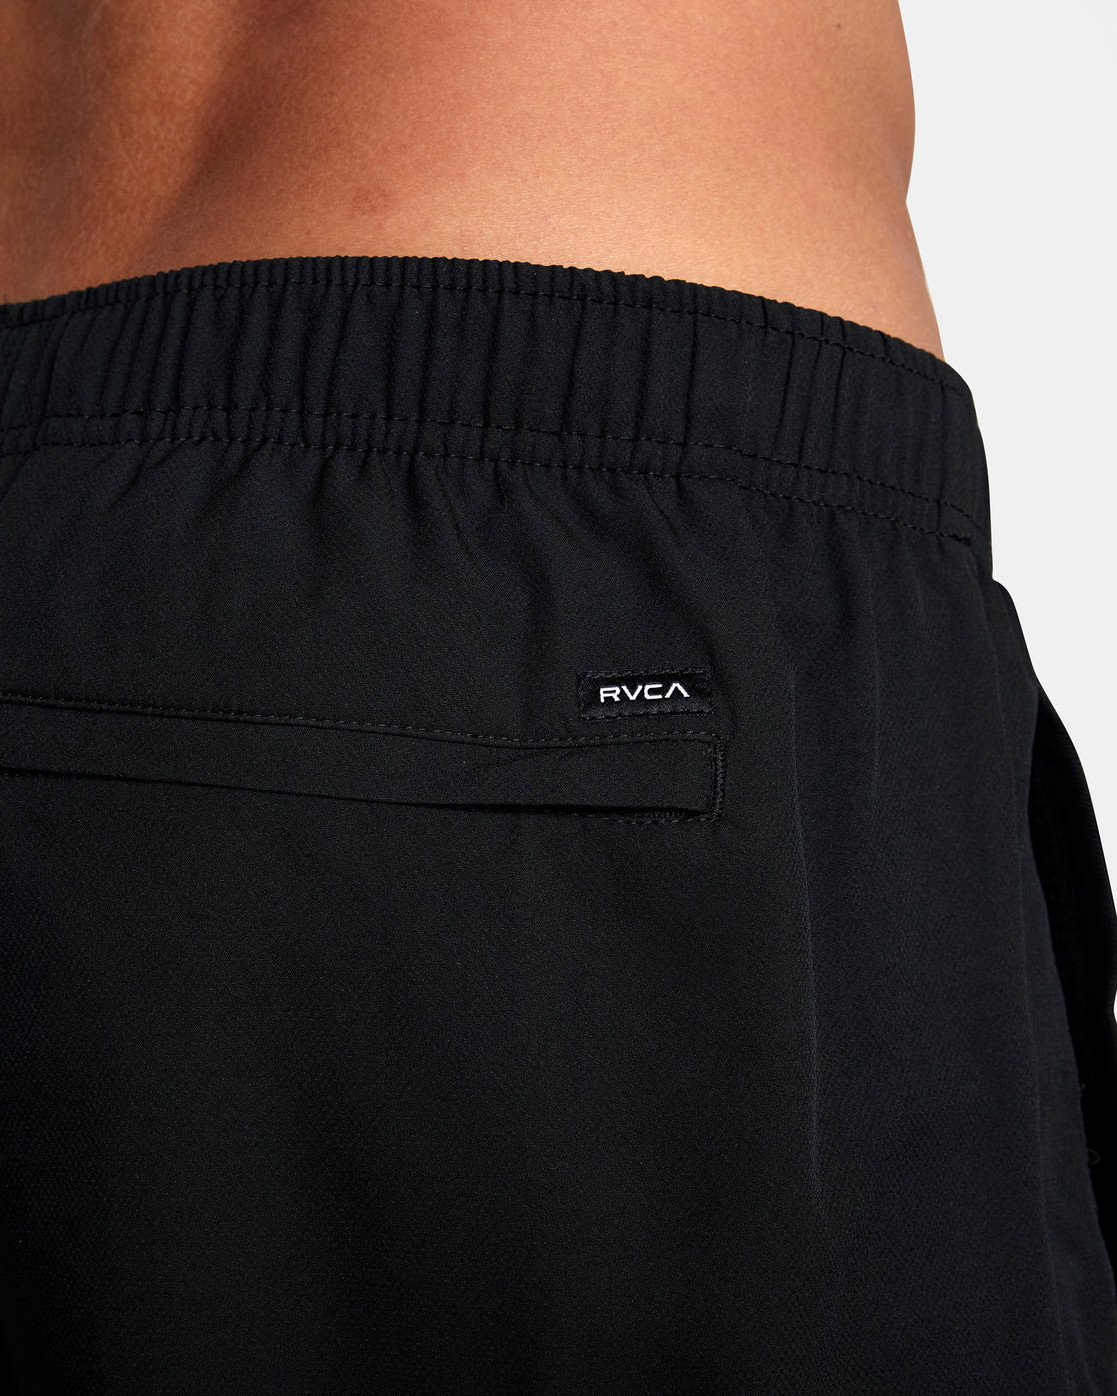 "10 YOGGER IV ATHLETIC SHORTS 17"" Black V2091YGR RVCA"